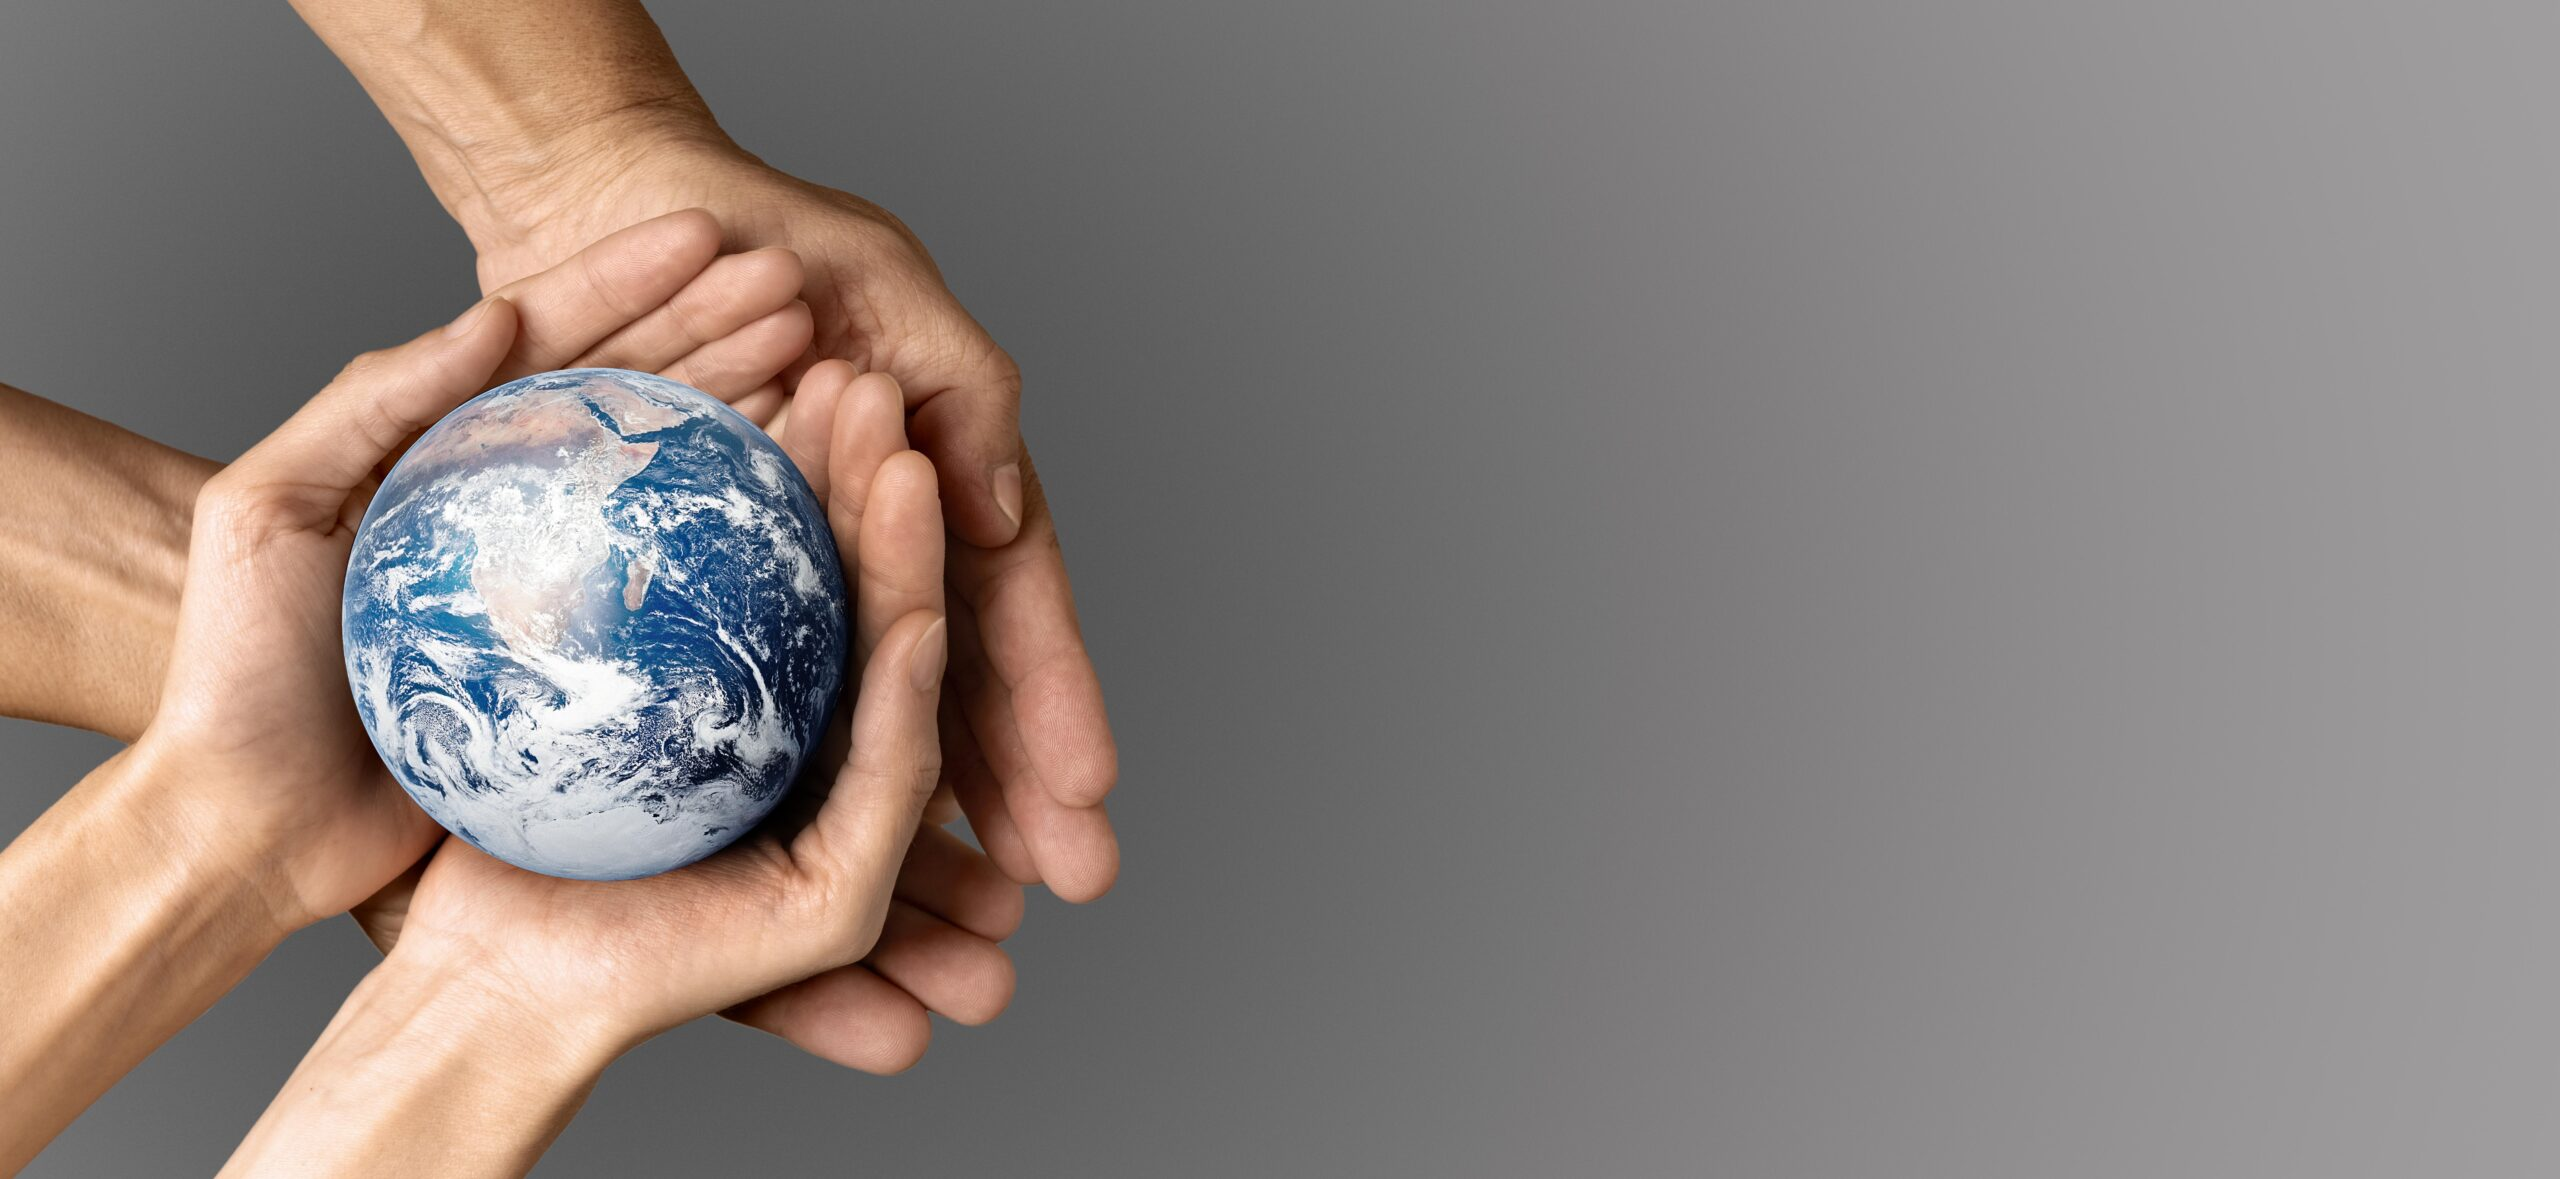 Are you passionate about the planet?